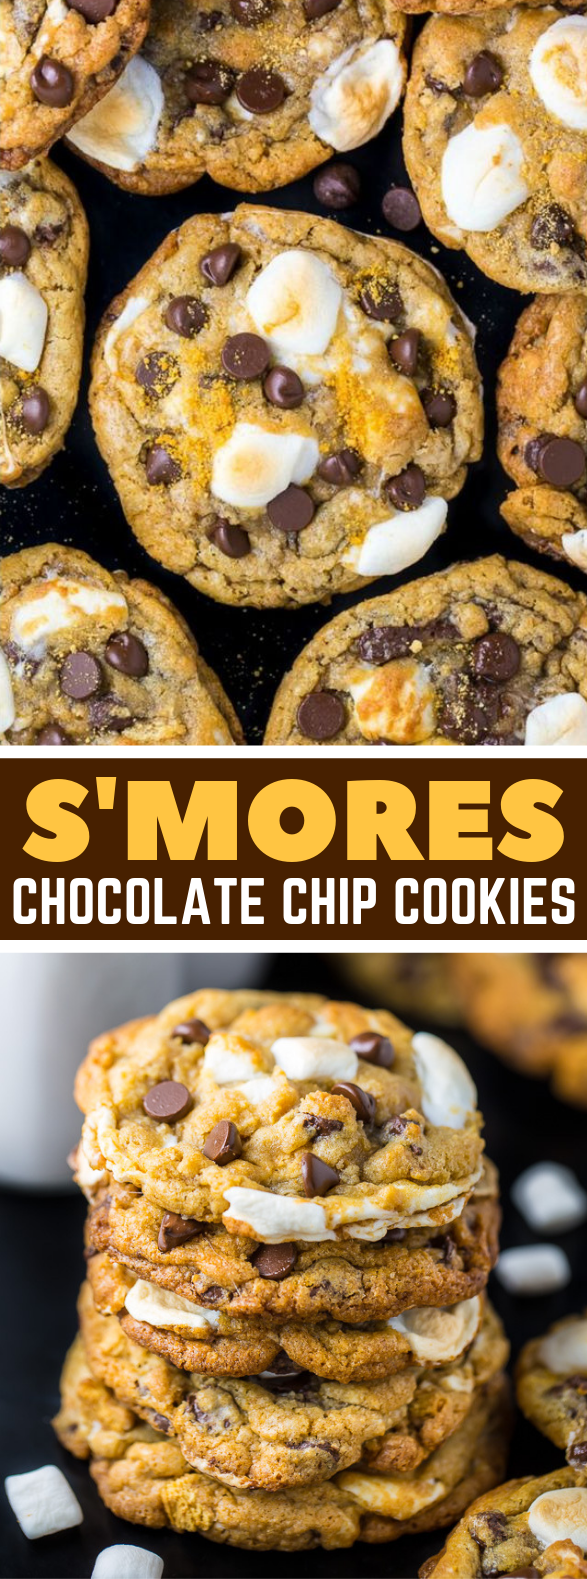 S'mores Chocolate Chip Cookies #chocochip #bestcookies